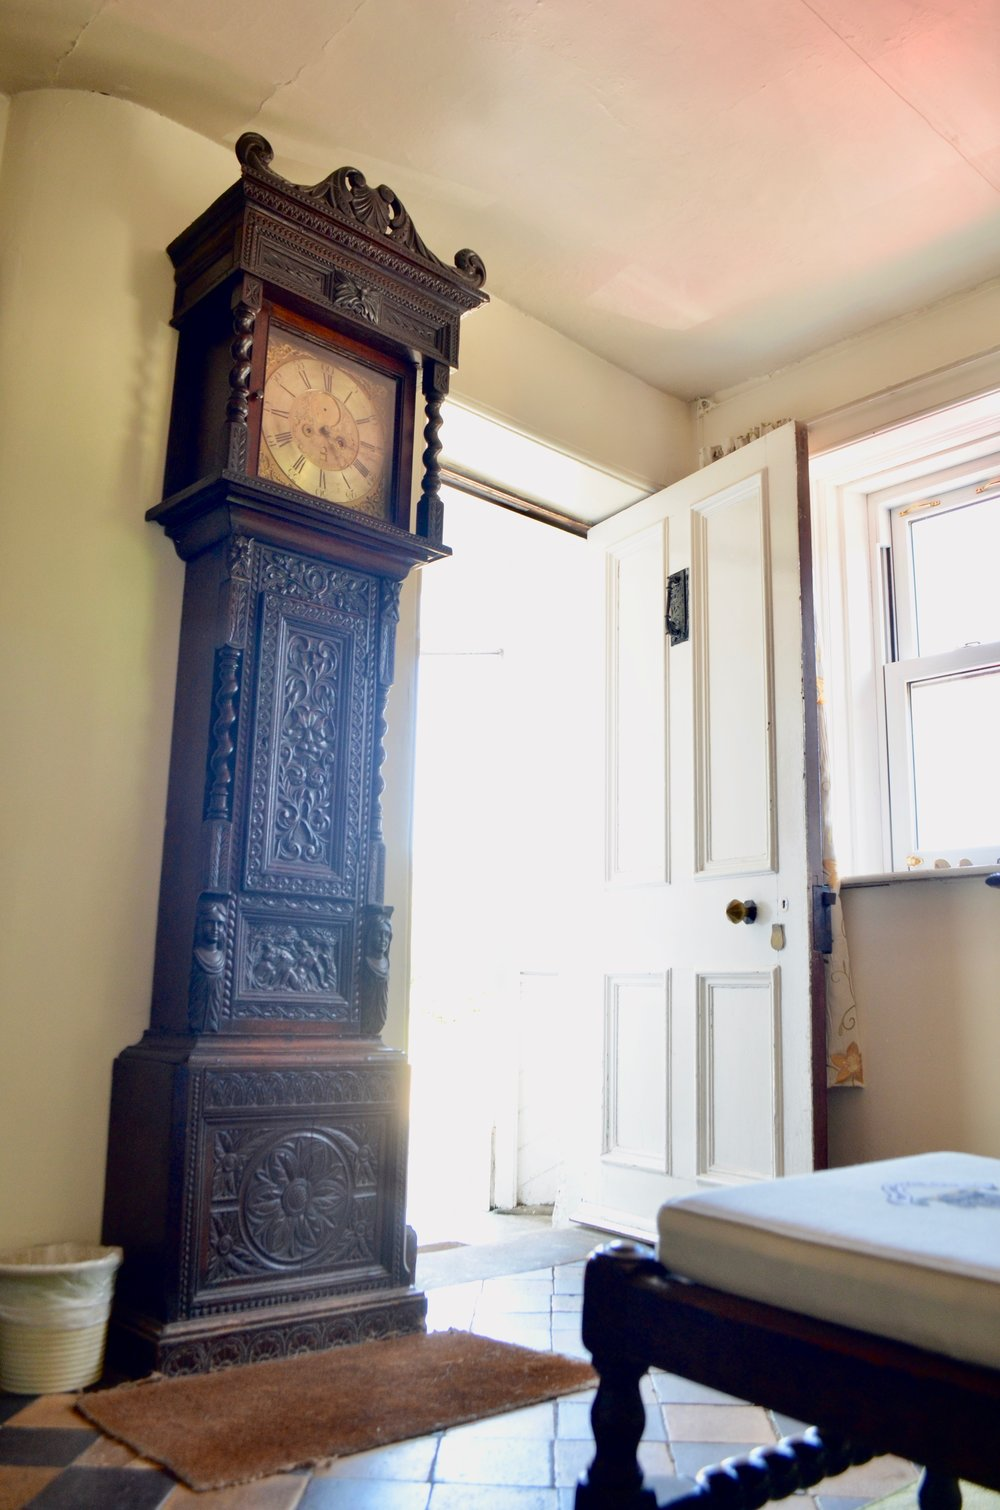 Cedric Boult's Grandfather Clock